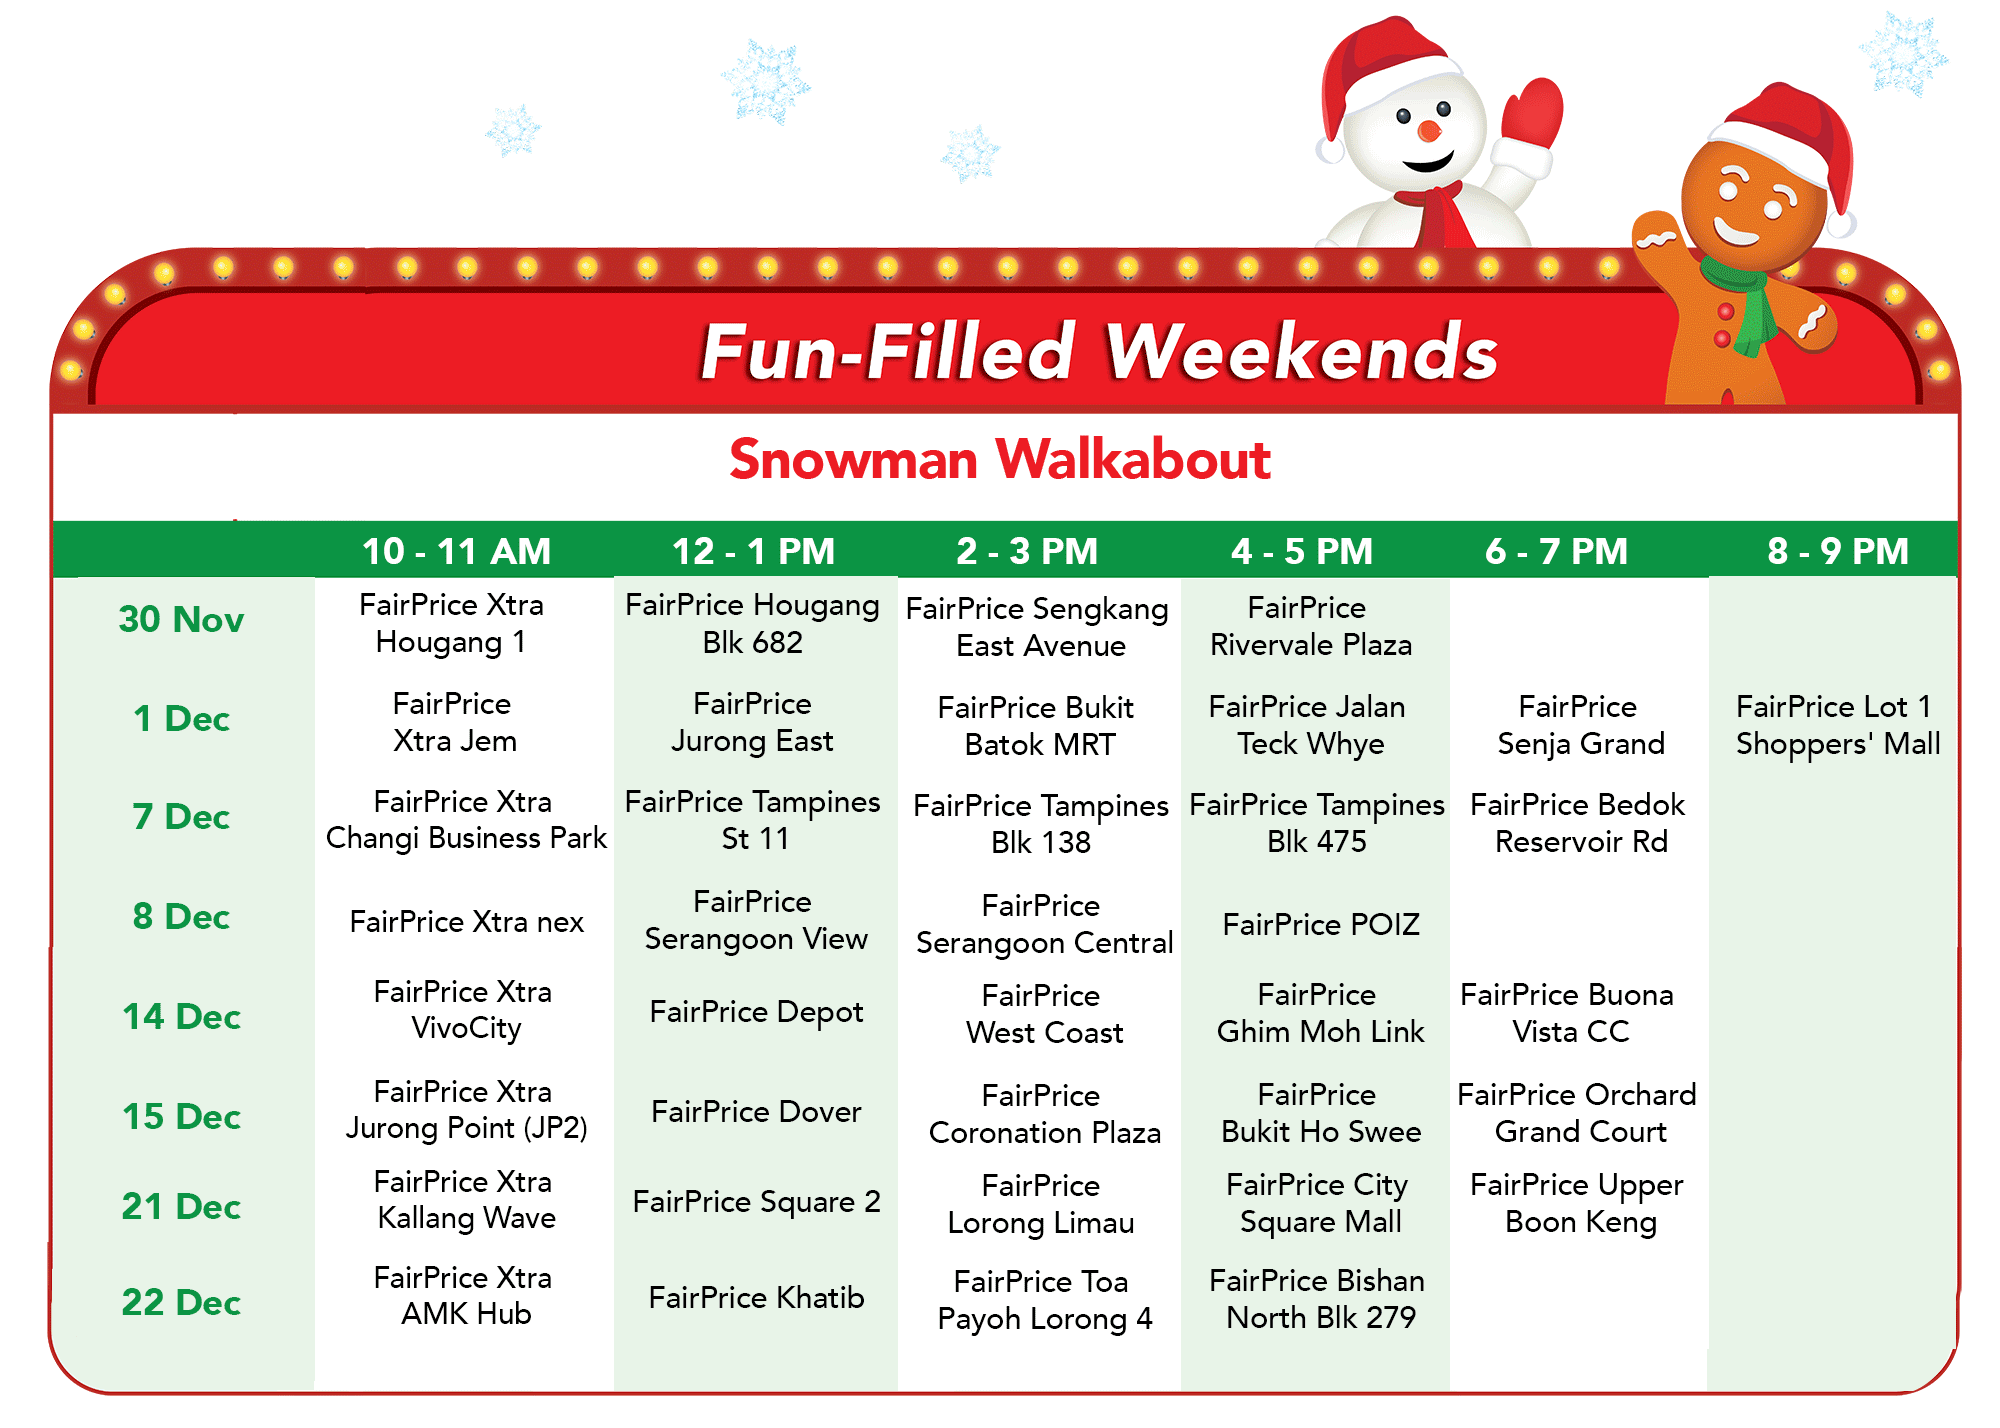 FairPrice Christmas - Snowman Walkabout